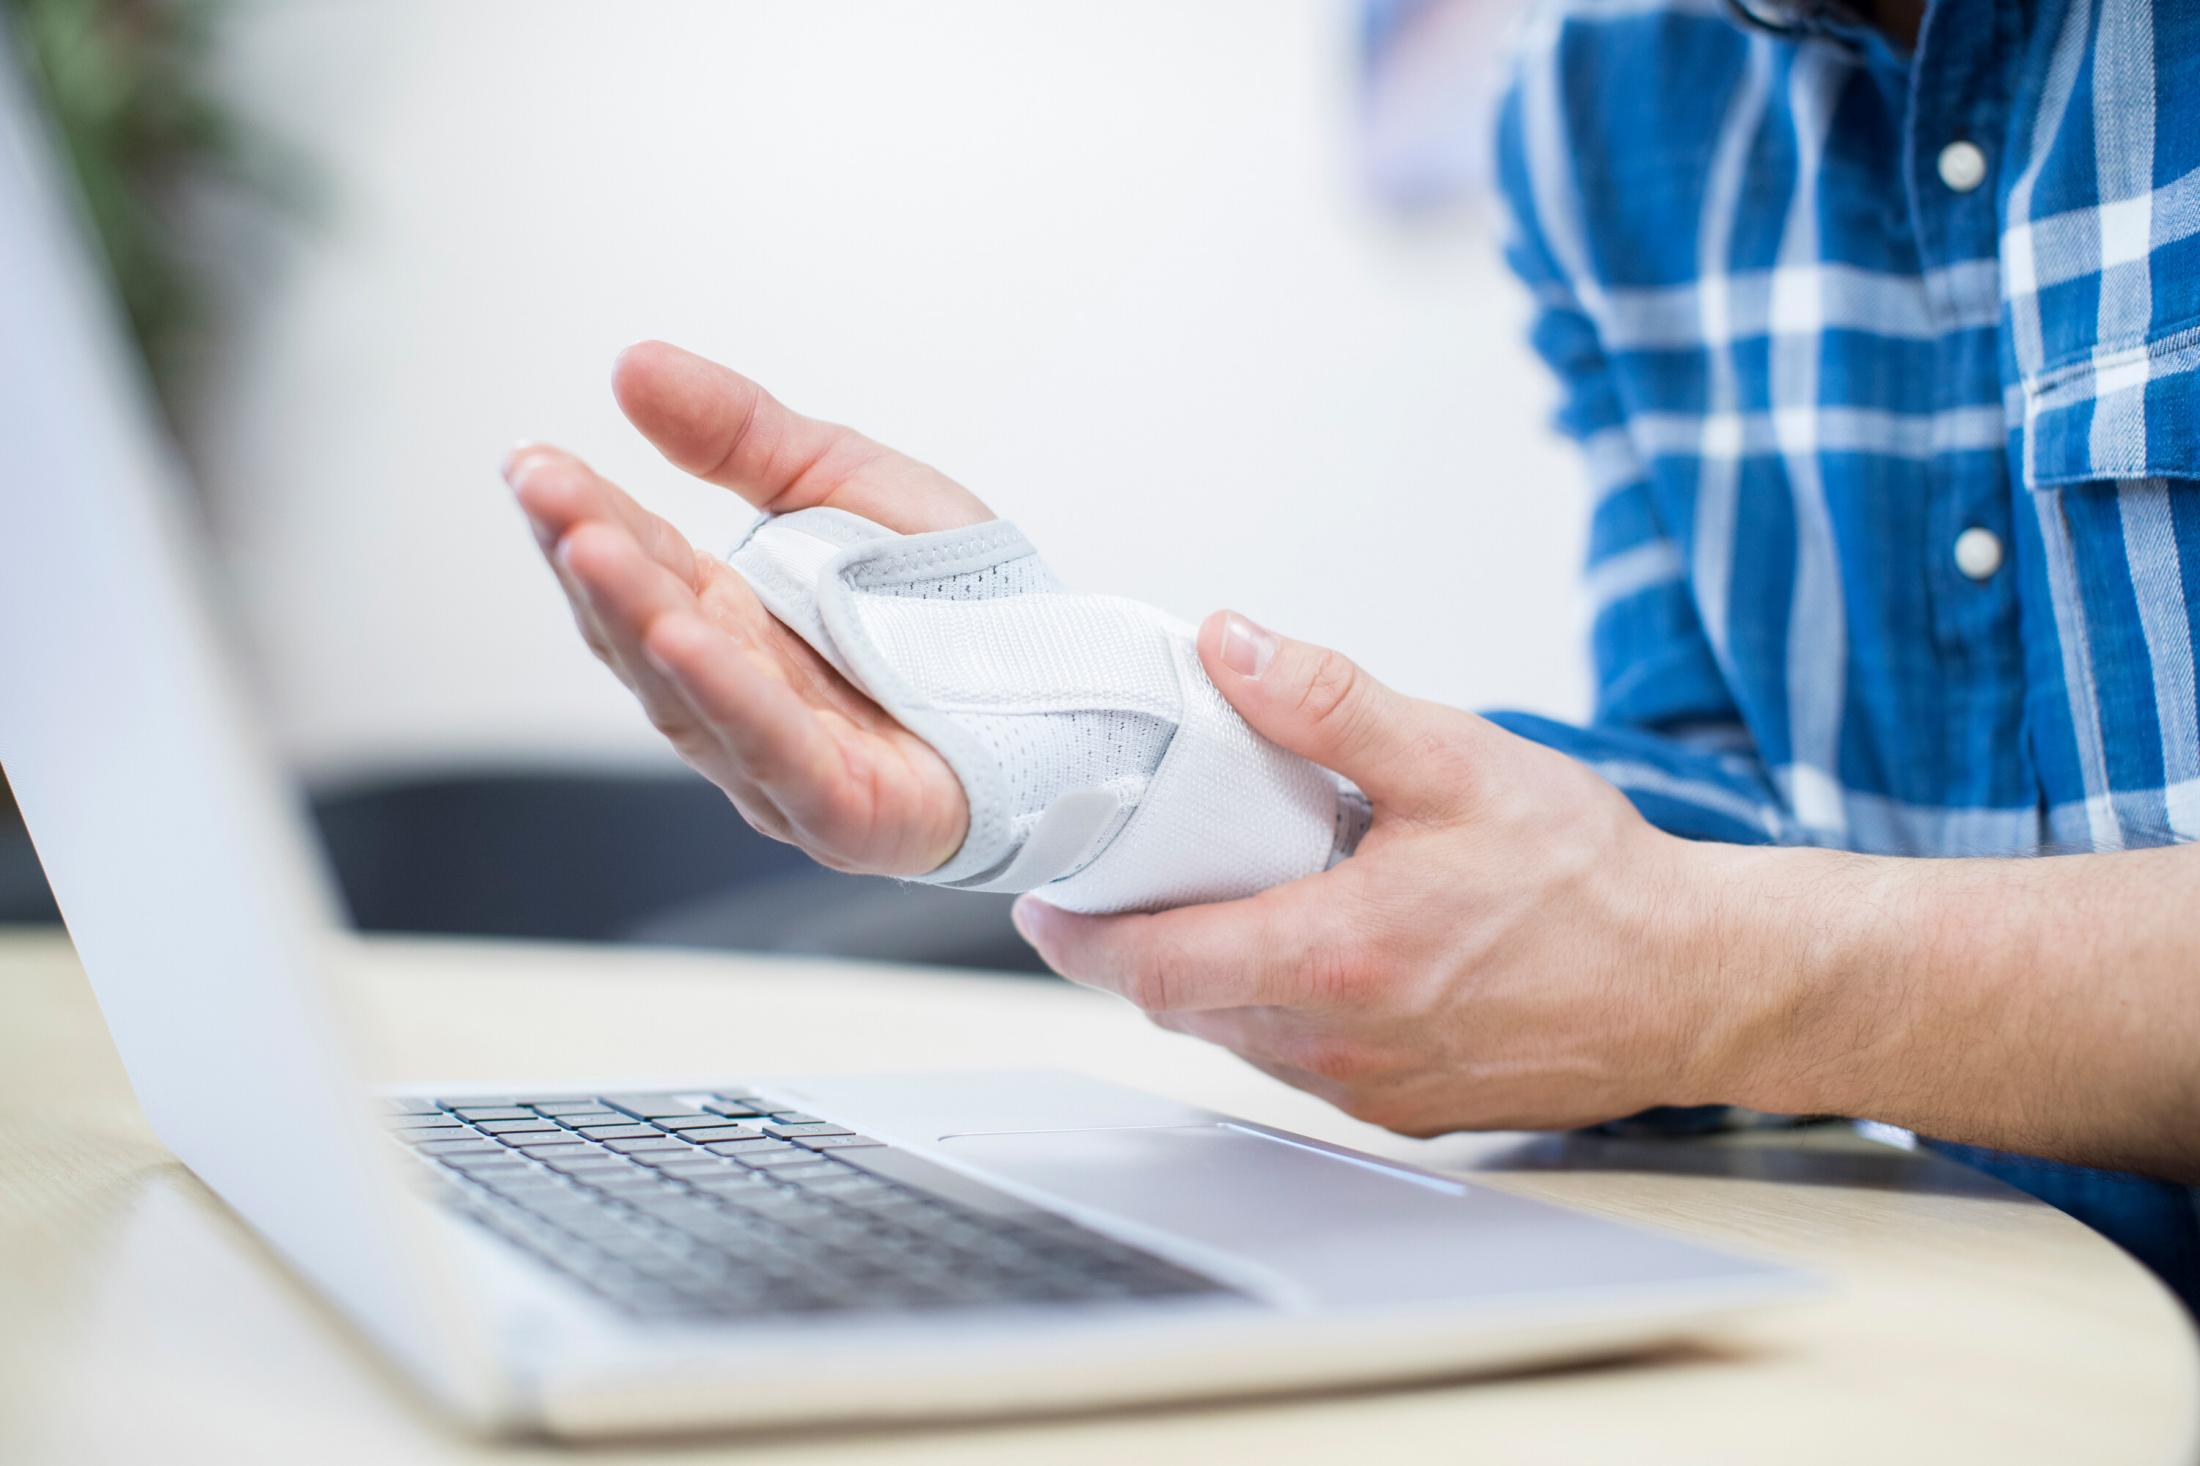 Repetitive Strain Injury (RSI) Causes and Solutions to the Problem